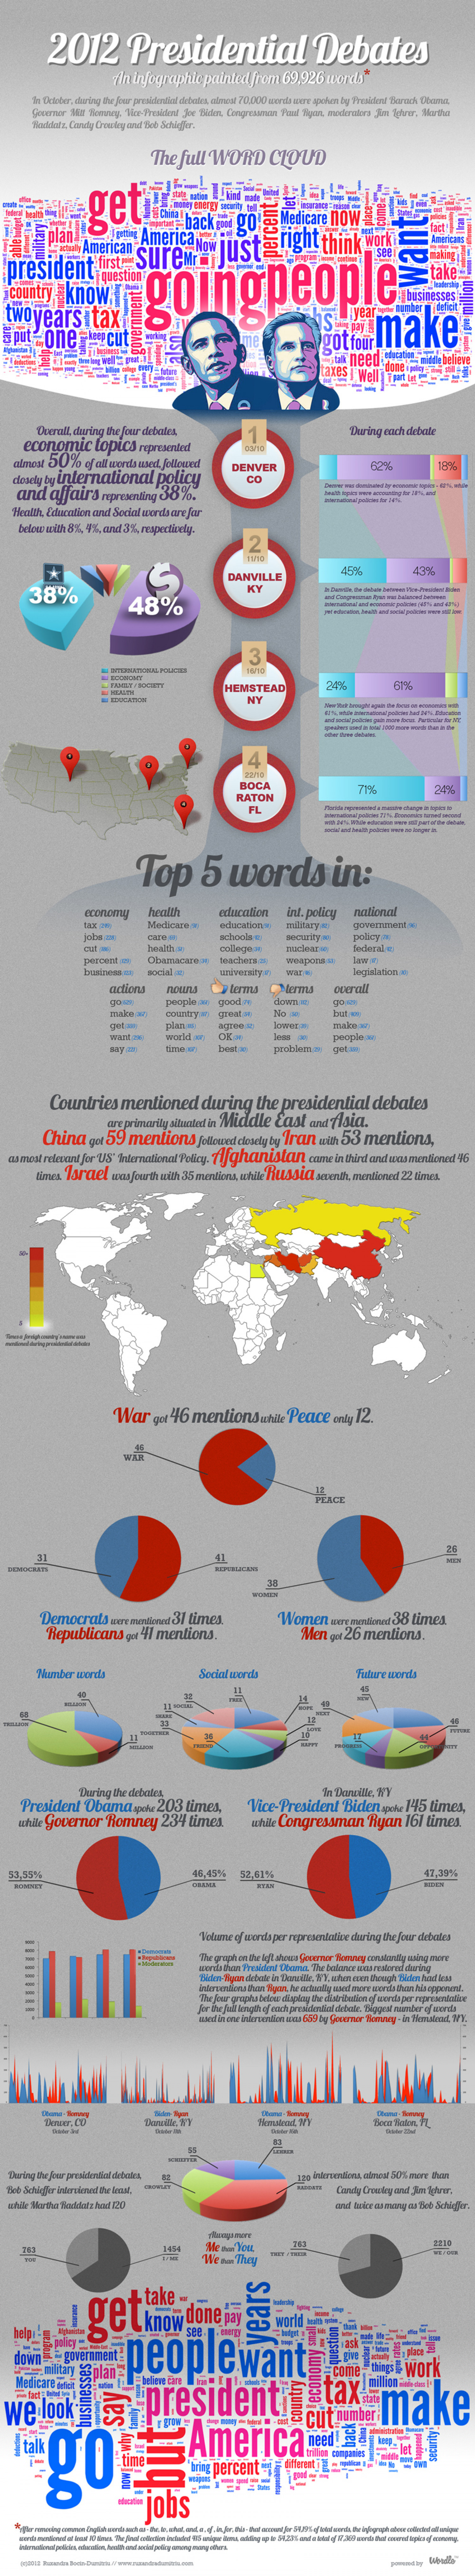 Infographic painted from the 69,926 words used during the four presidential debates Infographic